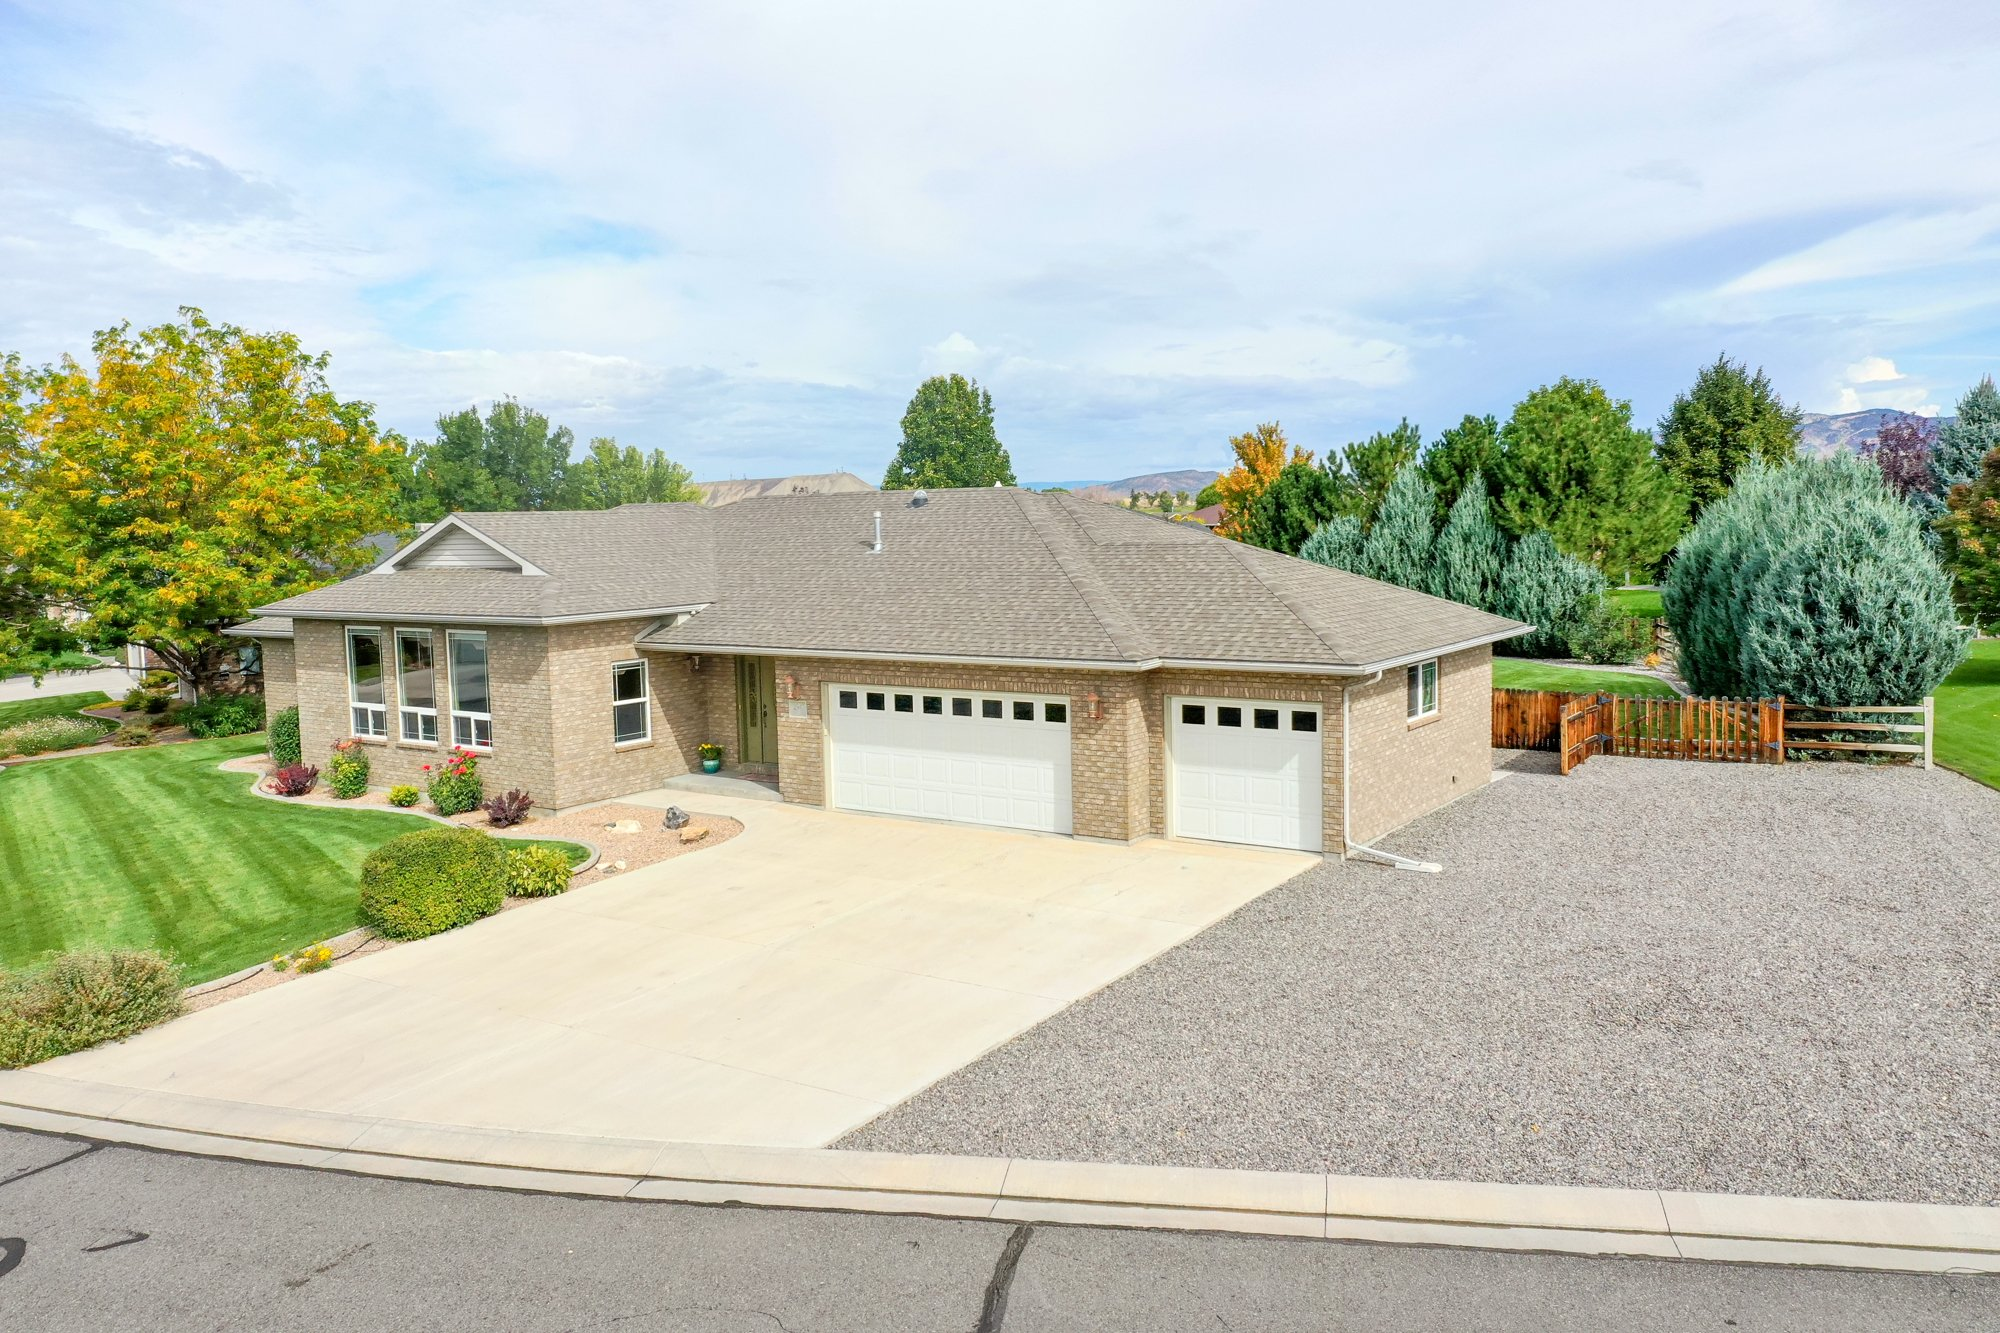 Home with RV Parking Area - 2941 Ivy Dr Montrose, CO 81401 - Atha Team Real Estate